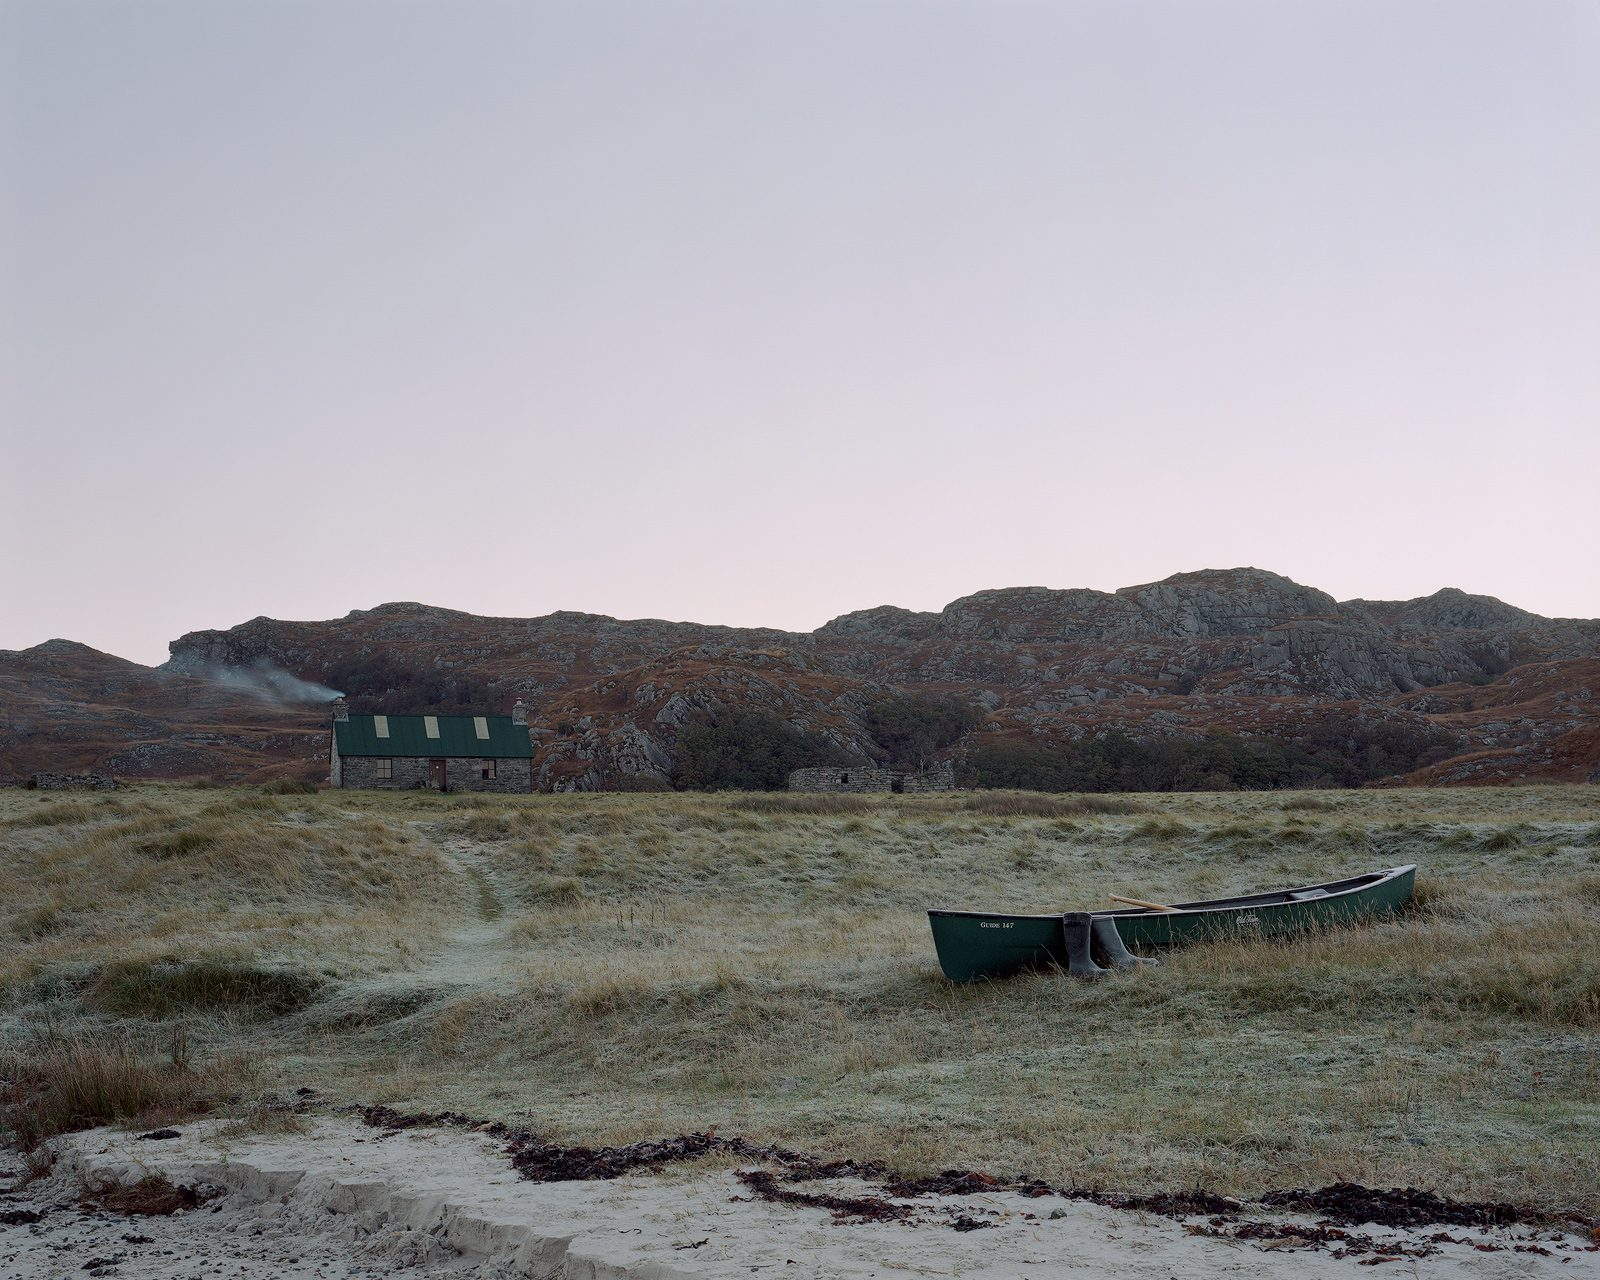 Sandy's Canoe at Peanmeanach, Ardnish Peninsula, Scotland. From Black Dots © Nicholas White